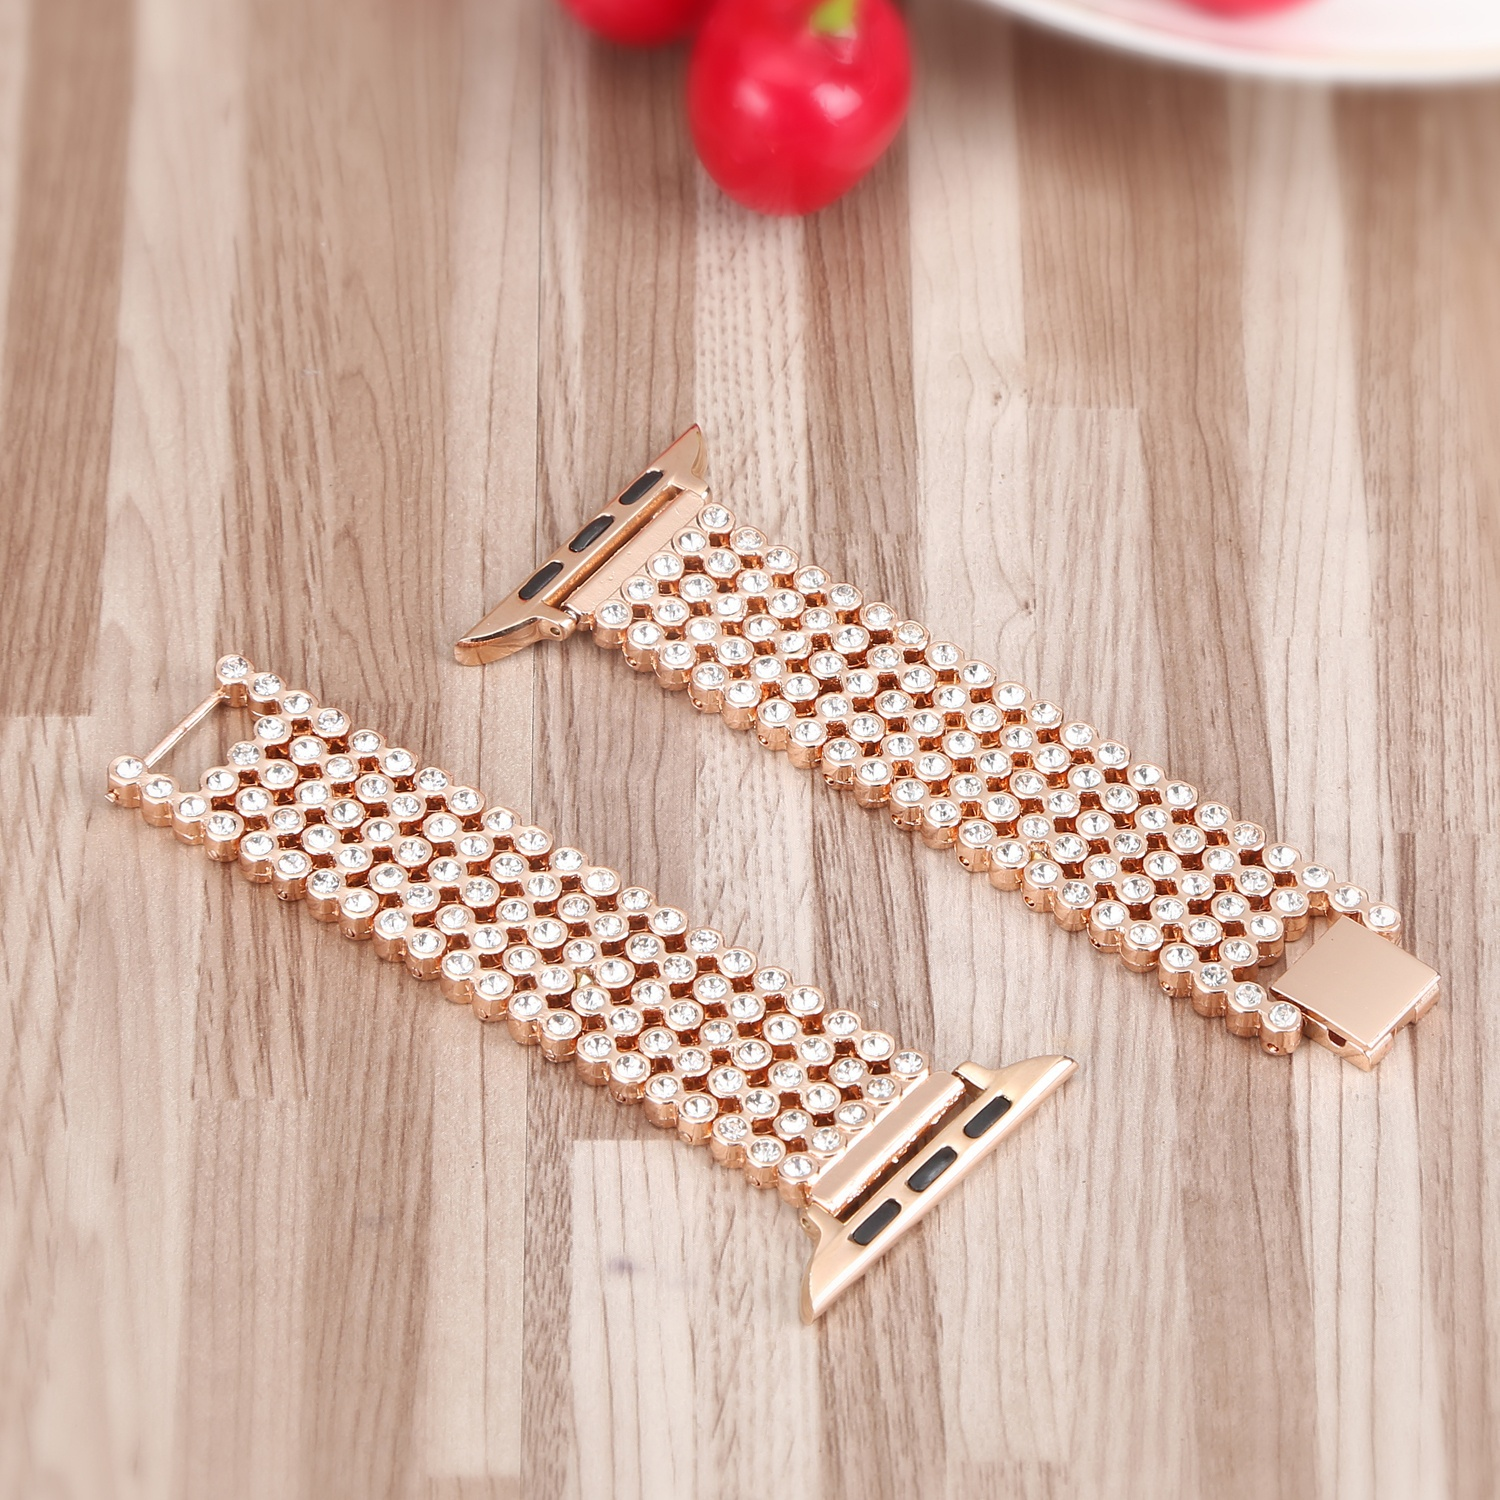 Image 5 - Crystal Diamond strap for Apple Watch band 38mm 42mm 40mm 44mm stainless steel Replacement Bands for iWatch series 5 4 3 2 1strap for apple watchreplacement strapstrap for -